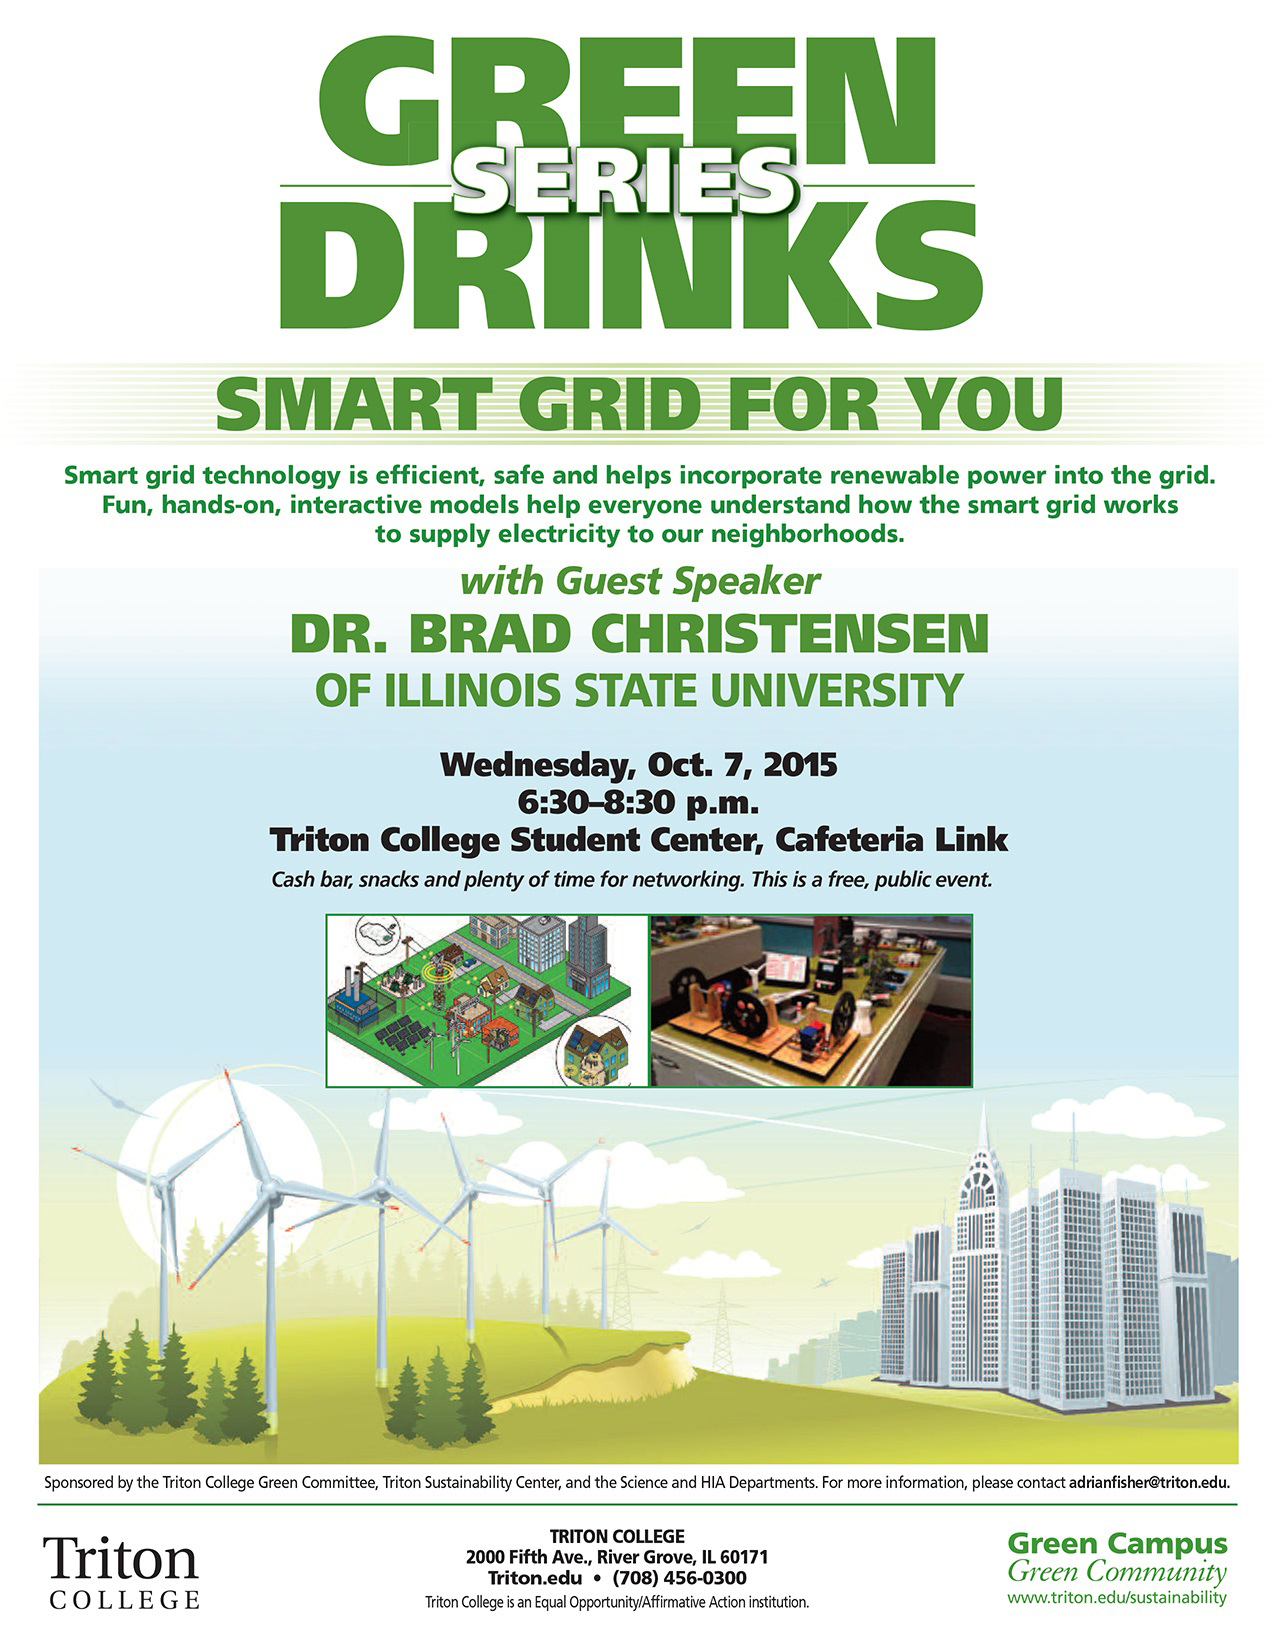 Poster about Green Drinks event at Triton.